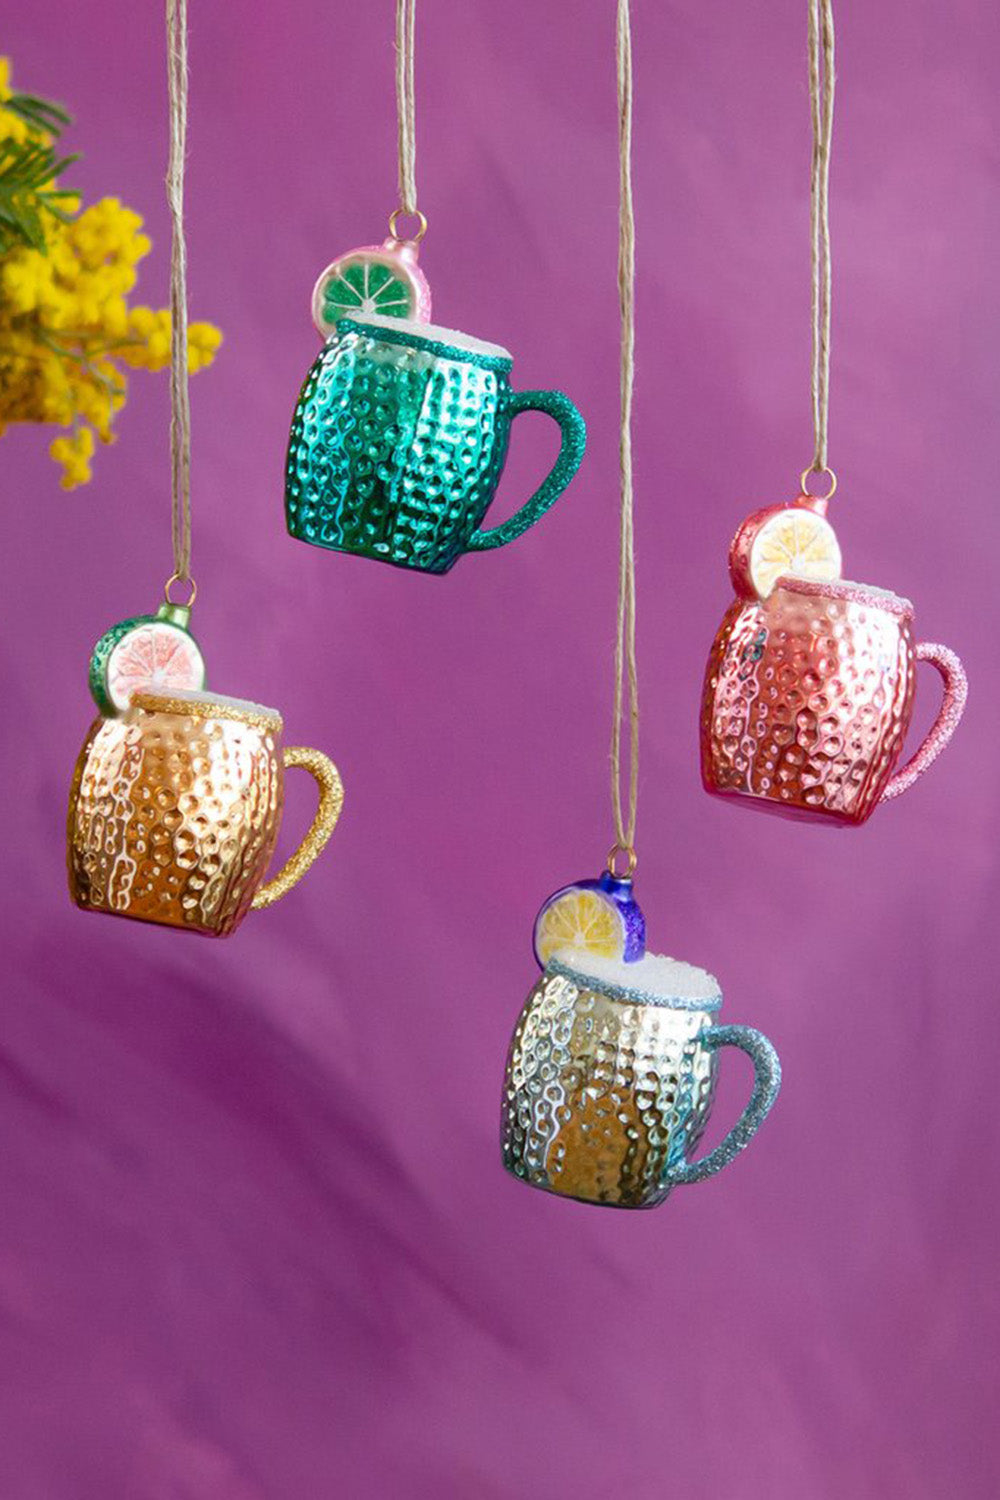 Glass Ornament - Whimsical Moscow Mule